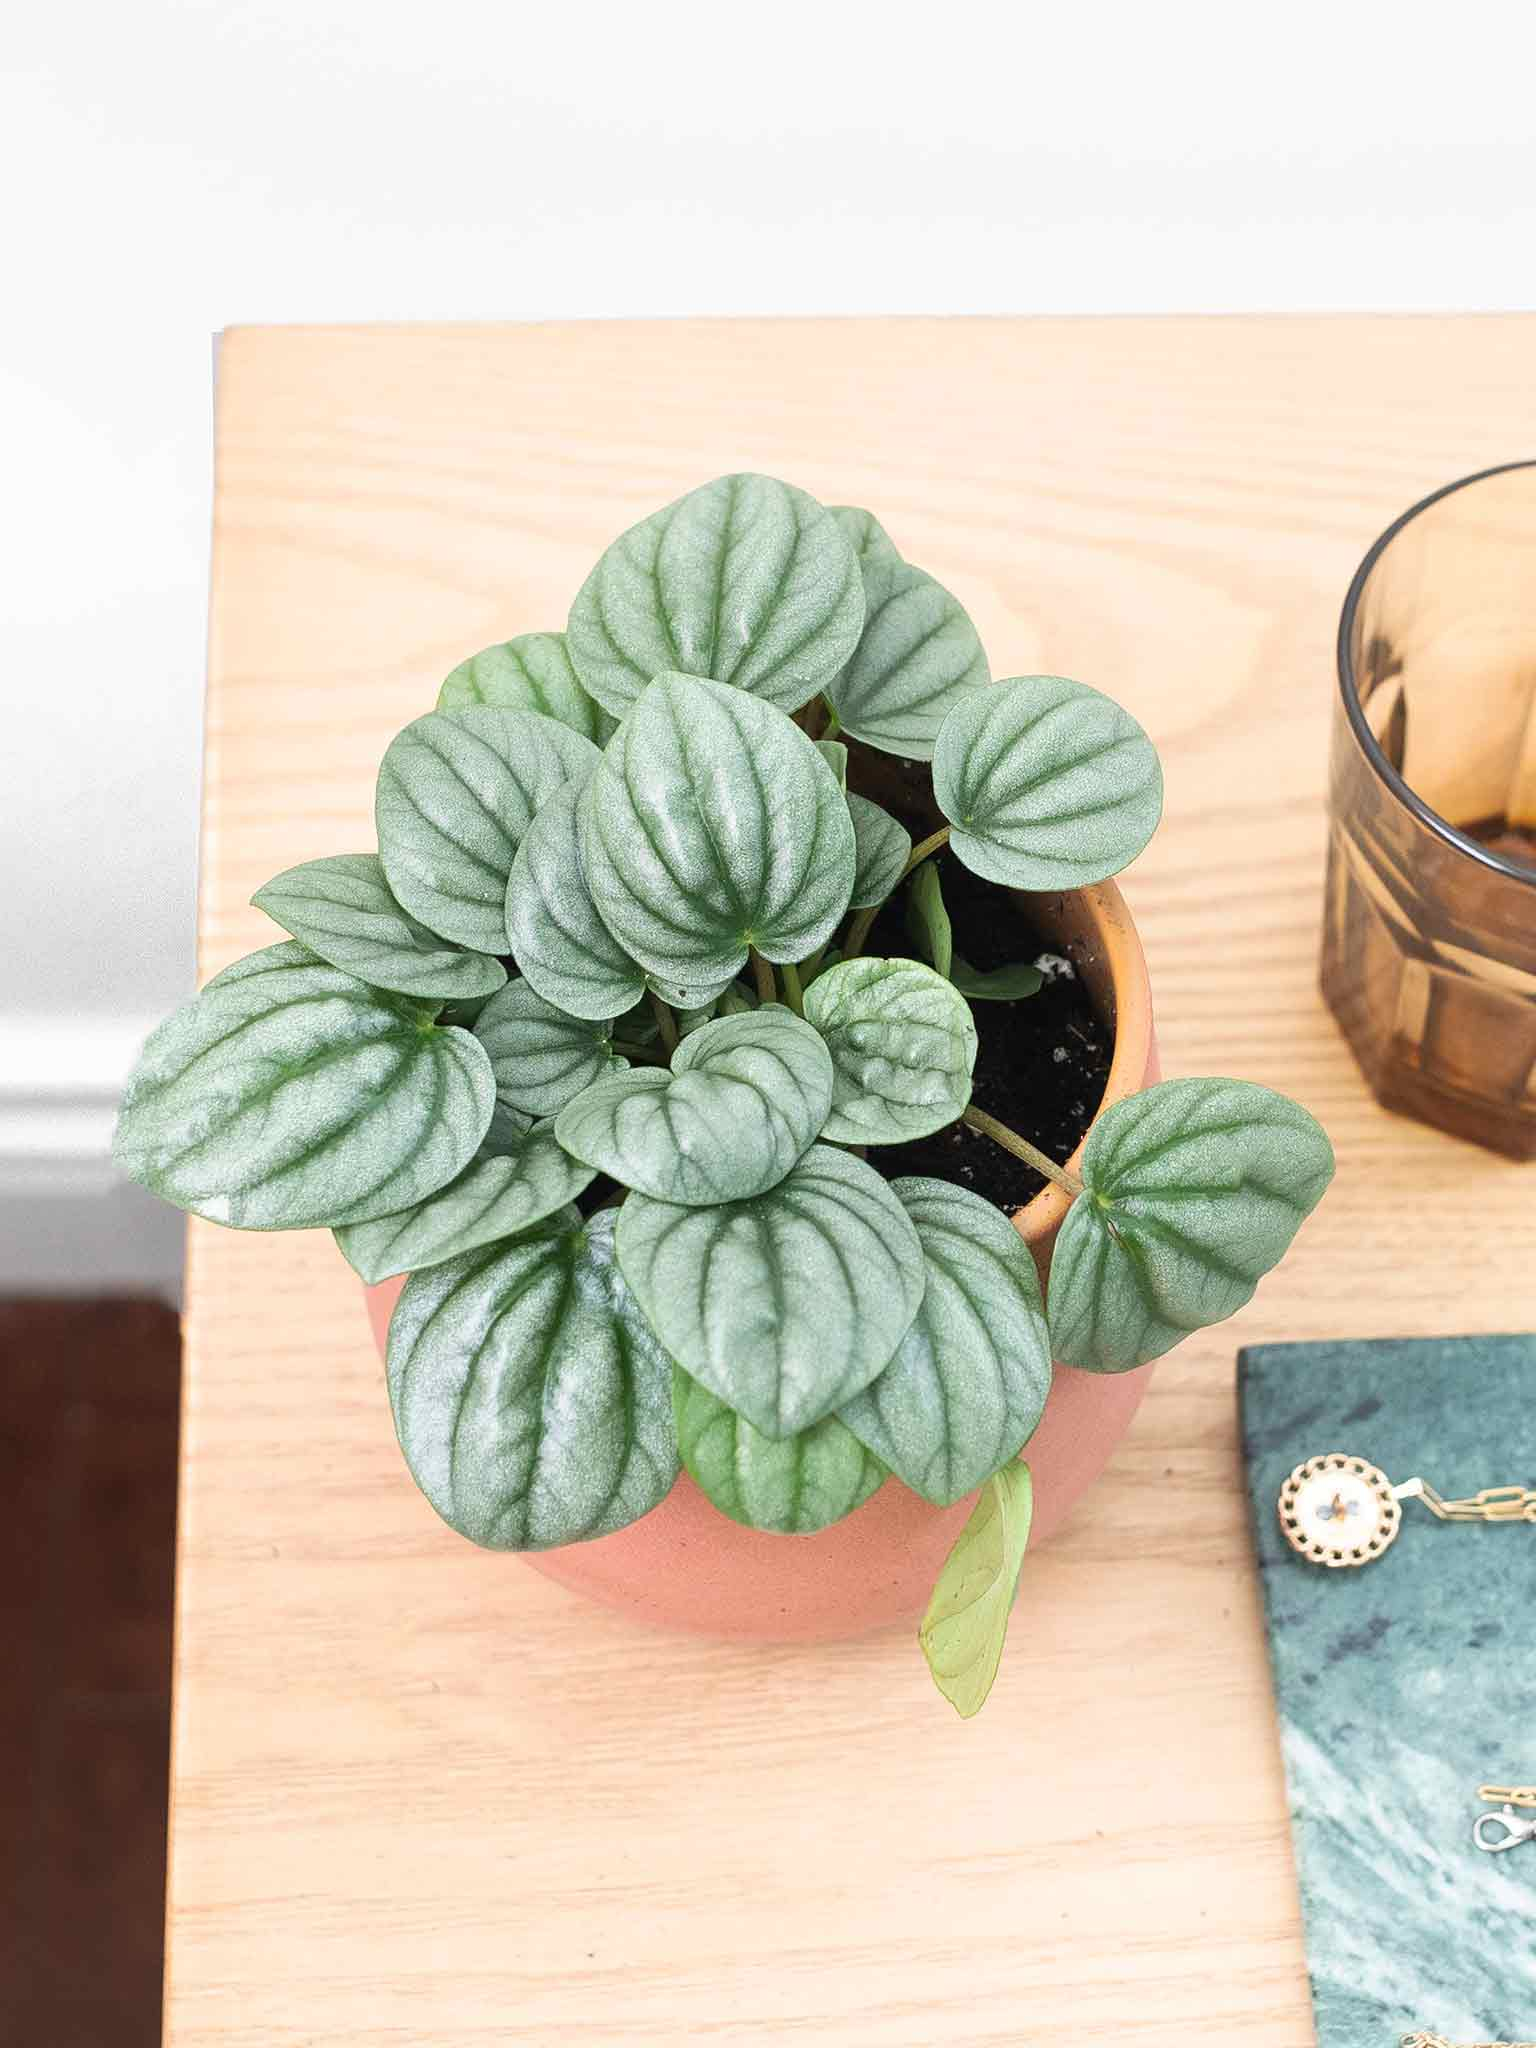 Silver ripple peperomia on a desk